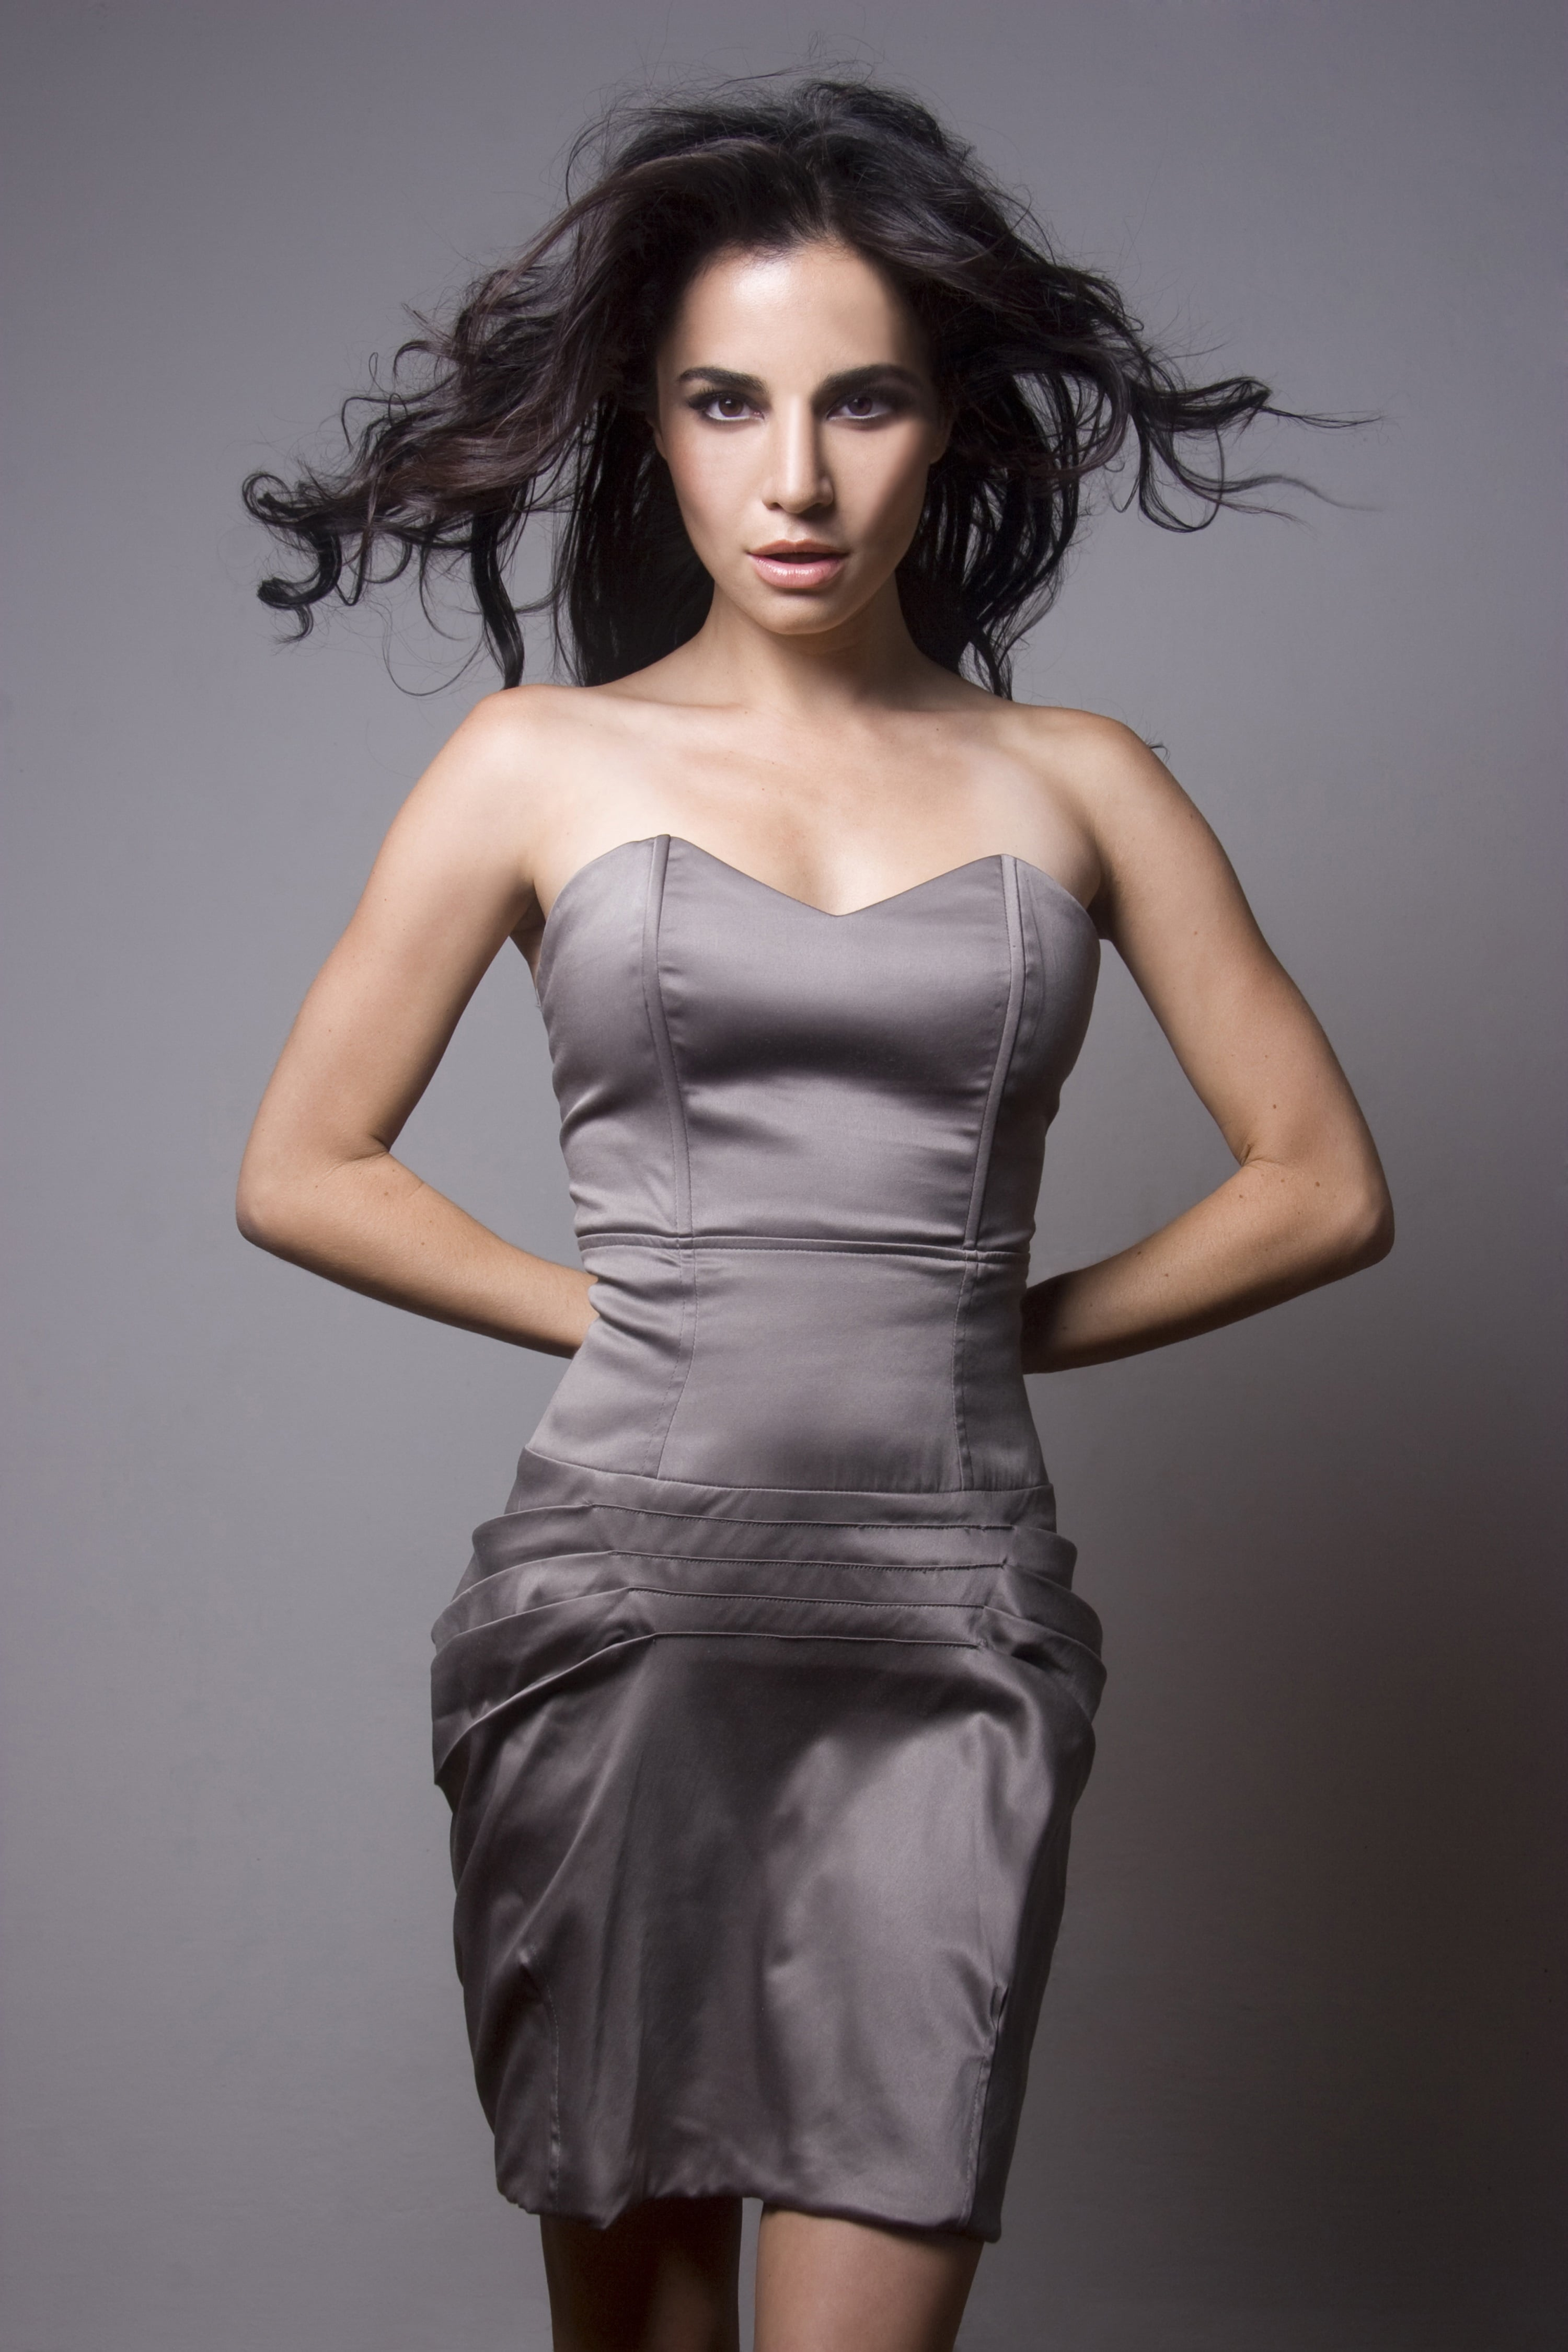 47 Hot Pictures Of Martha Higareda Will Drive You Nuts For Her-6556